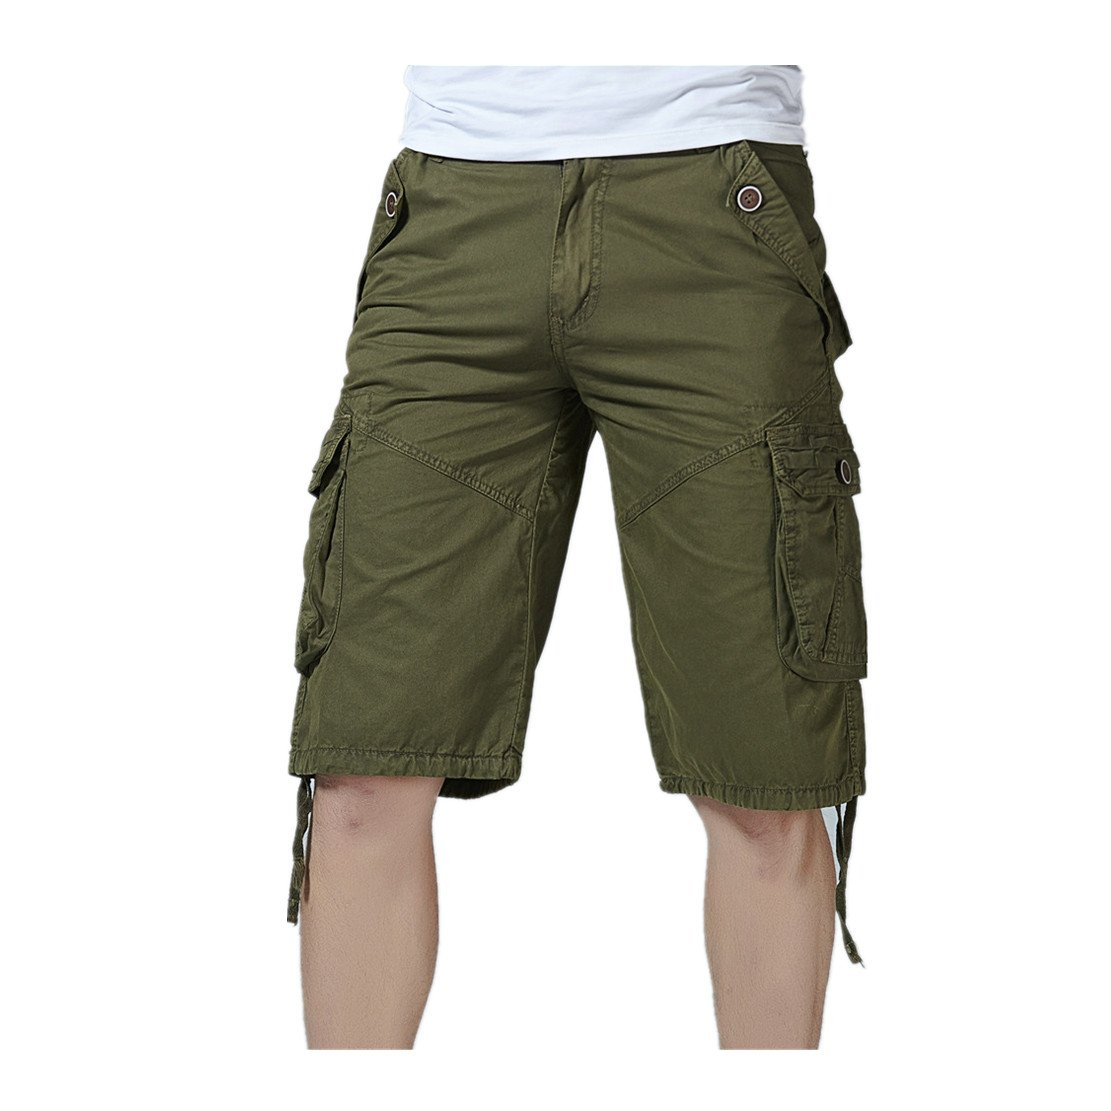 WEUIE Clearance Sale Fashion Mens Casual Pocket Beach Work Casual Short Trouser Shorts Pants (40,Army Green)